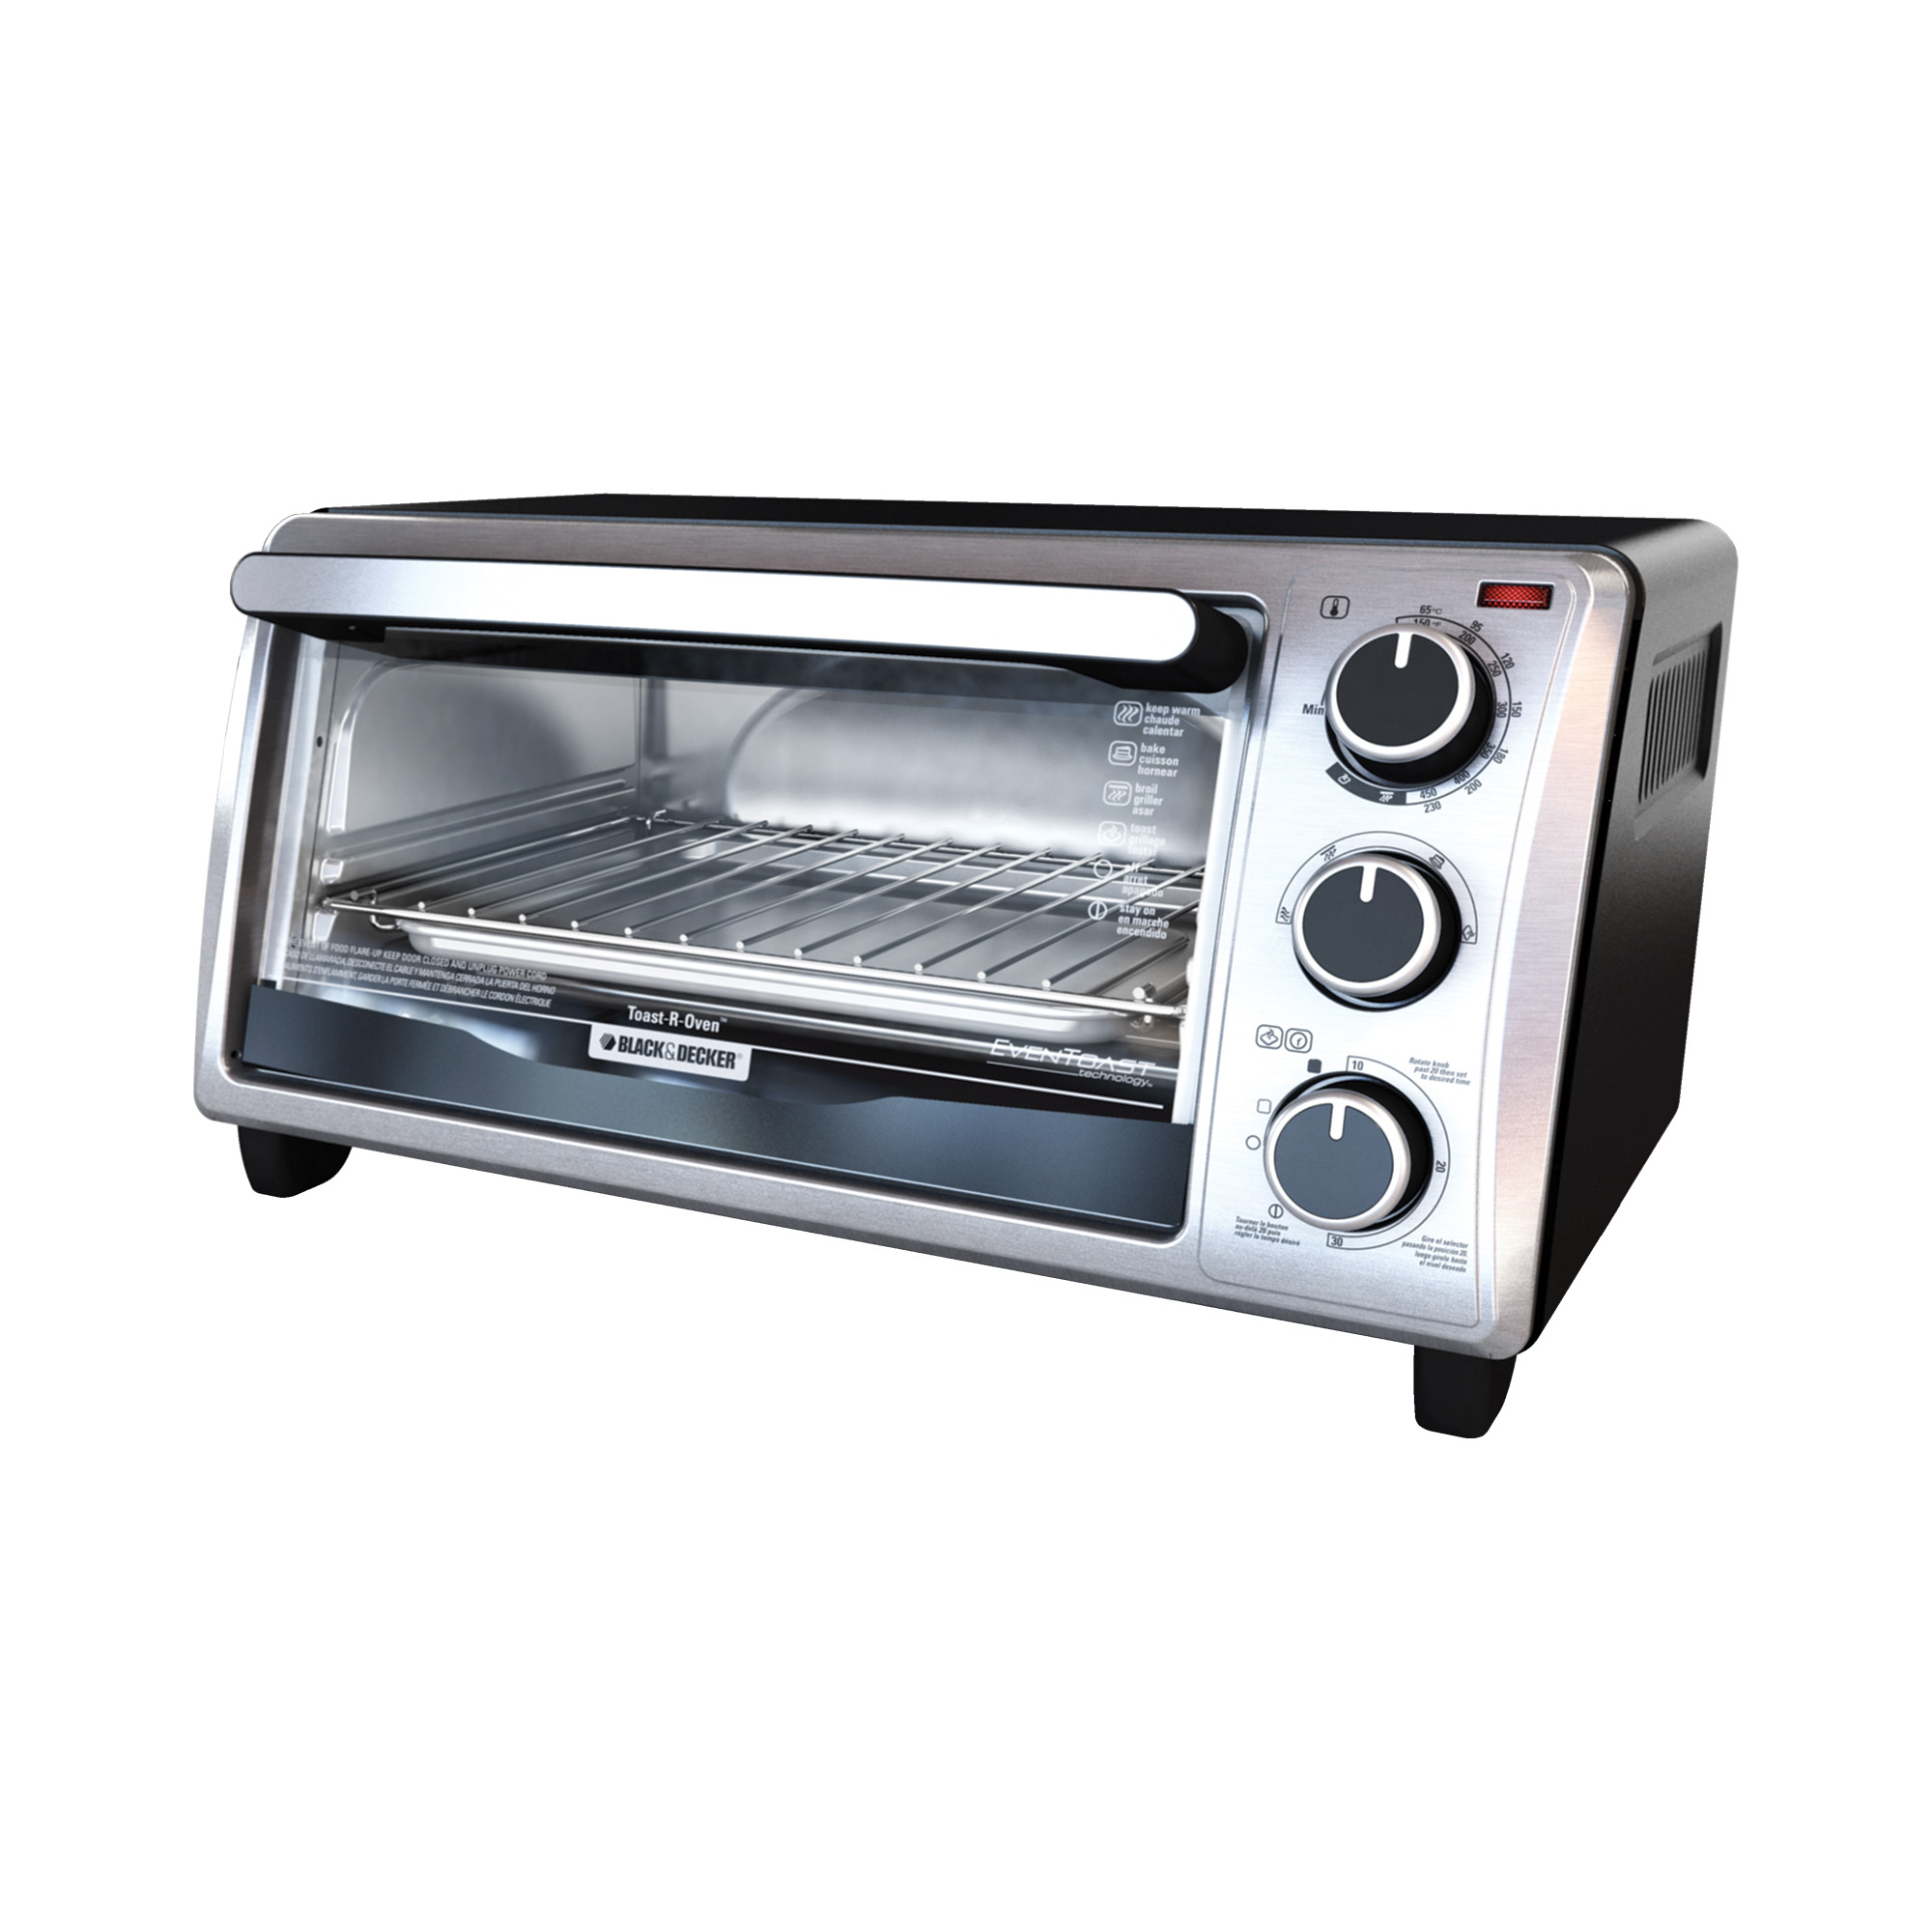 TO1303SBD_HERO_HR.ashx?mh=285 convection and toaster ovens cooking appliances black decker black and decker toaster oven wiring diagram at panicattacktreatment.co